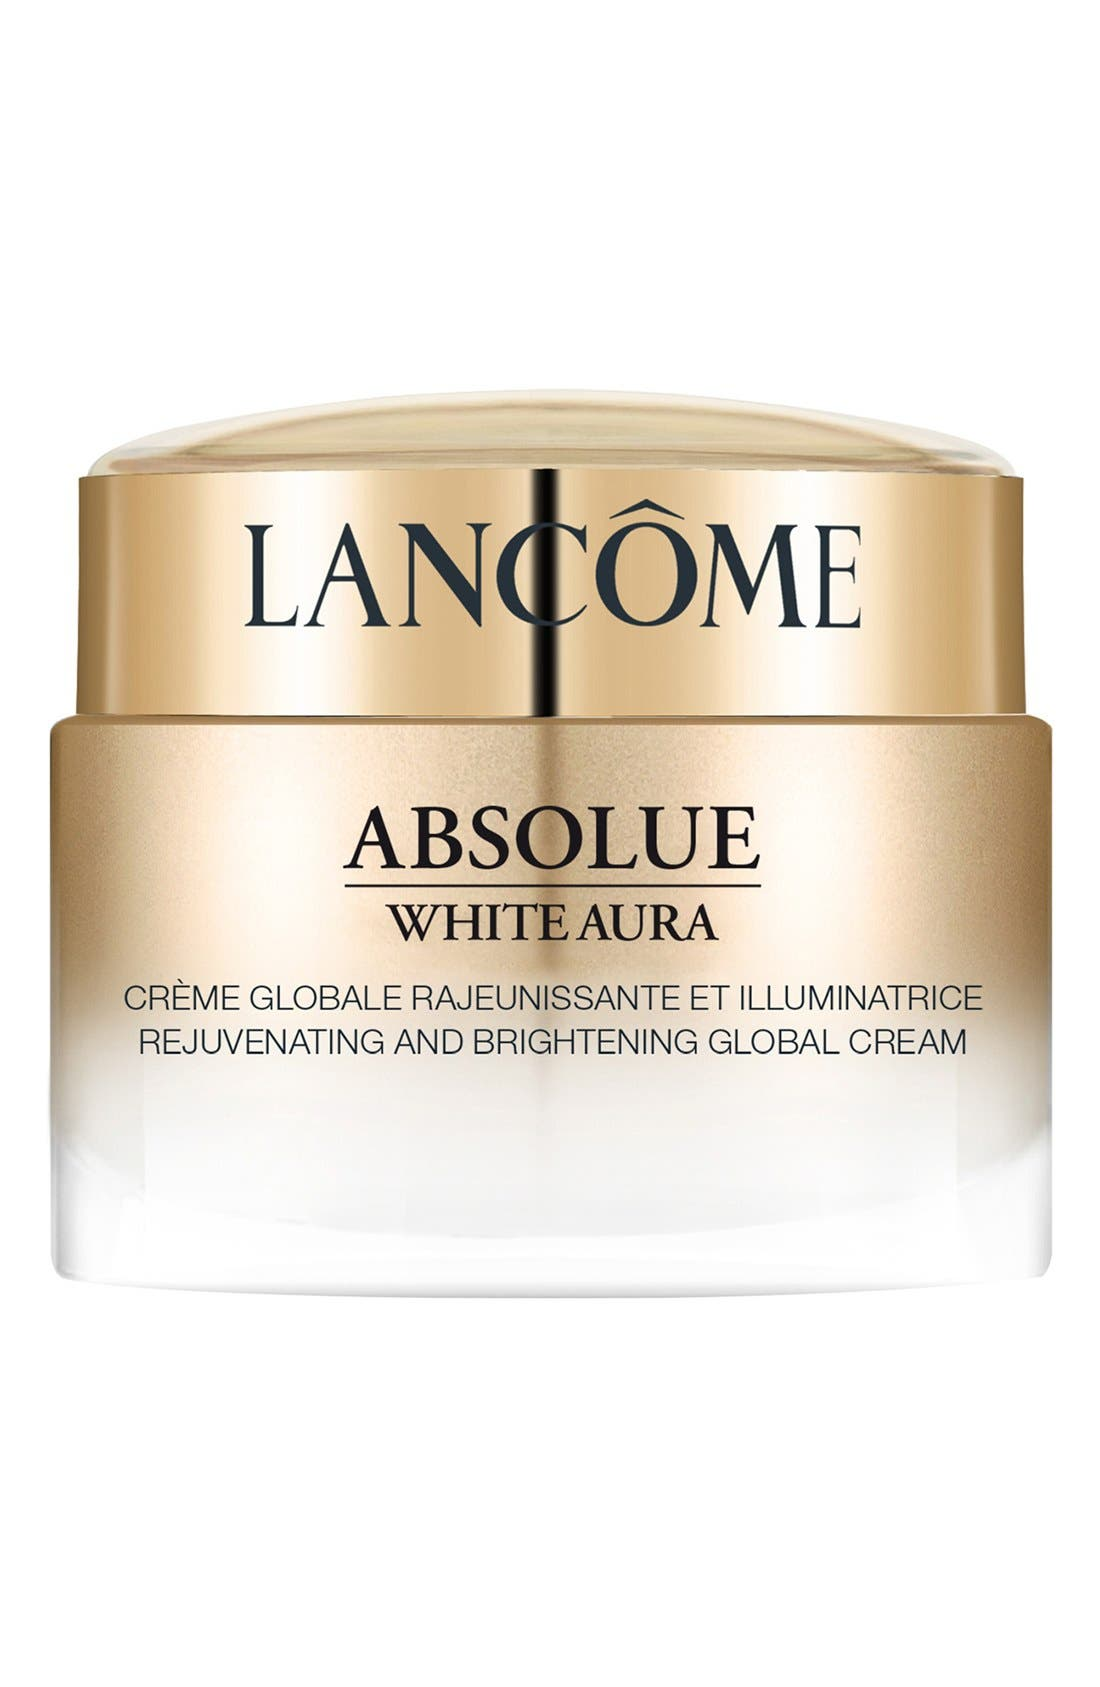 Absolue White Aura Rejuvenating and Brightening Global Cream,                             Main thumbnail 1, color,                             000